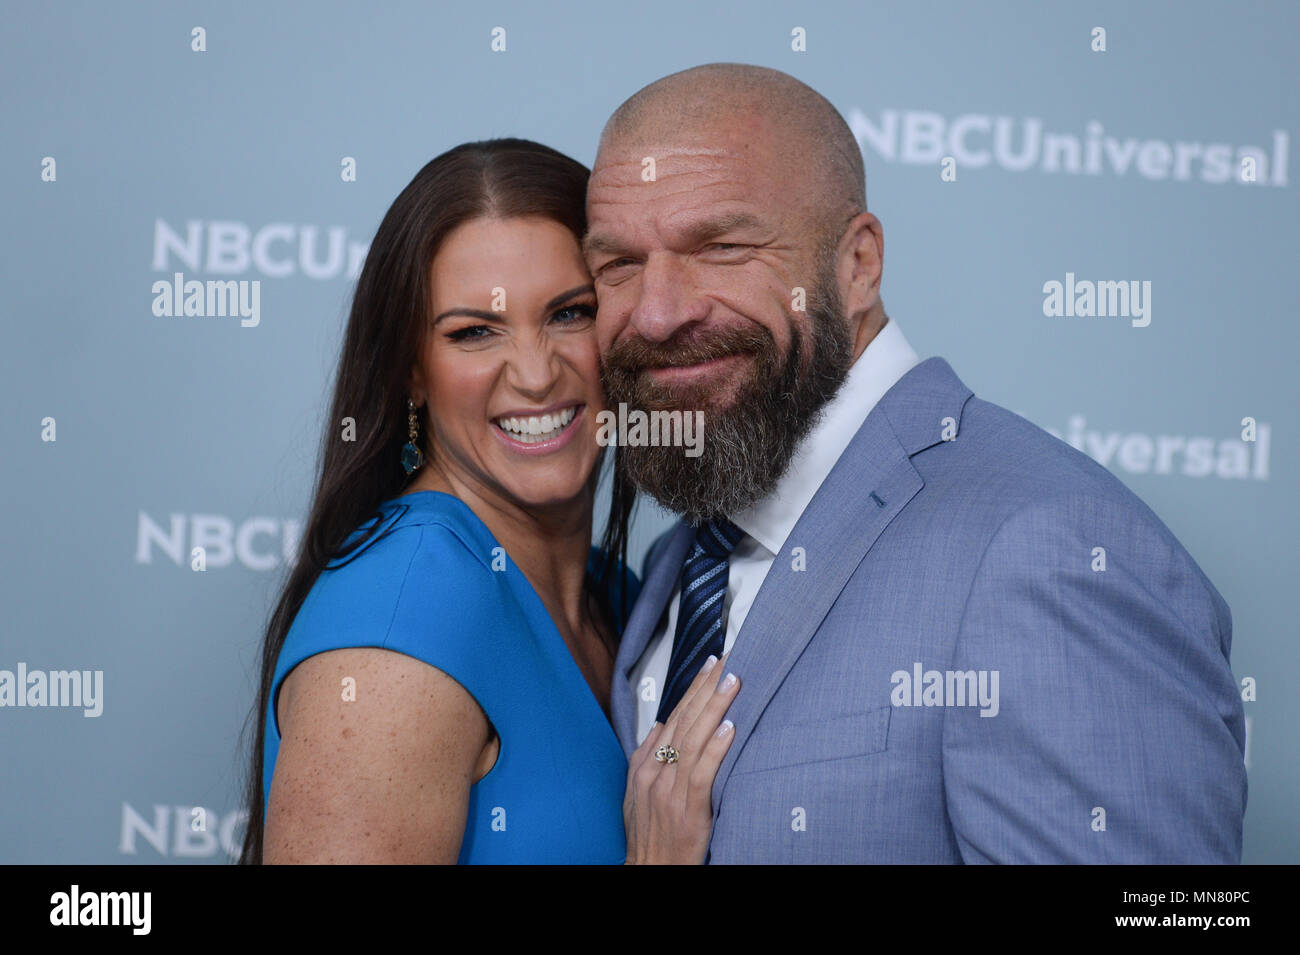 Stephanie McMahon and Triple H attend the Unequaled NBCUniversal Upfront campaign at Radio City Music Hall on May 14, 2018 in New York. - Stock Image